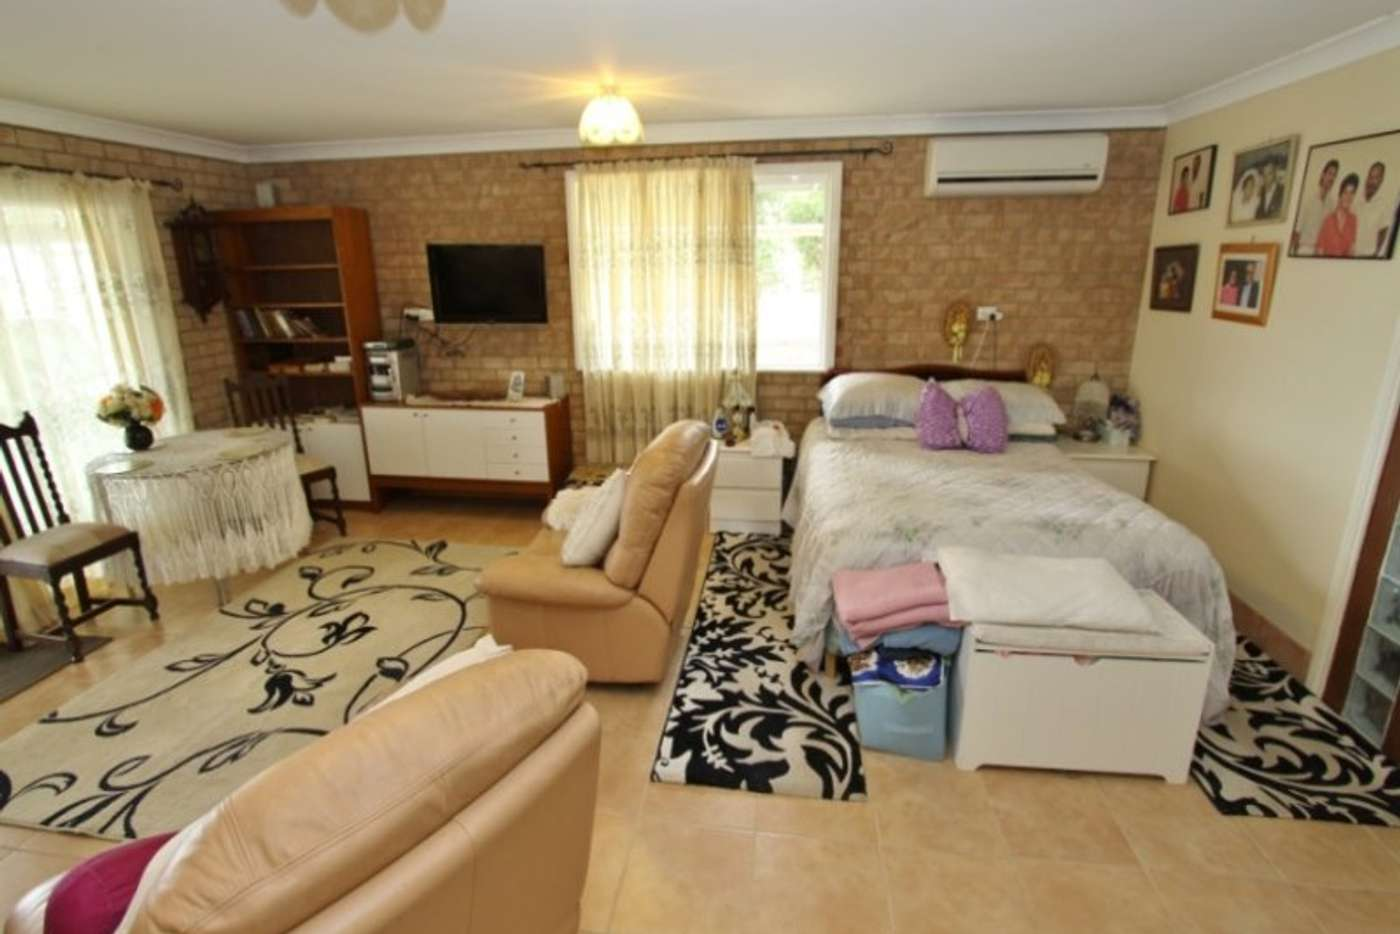 Sixth view of Homely house listing, 2 Markwell Street, Brooklands QLD 4615